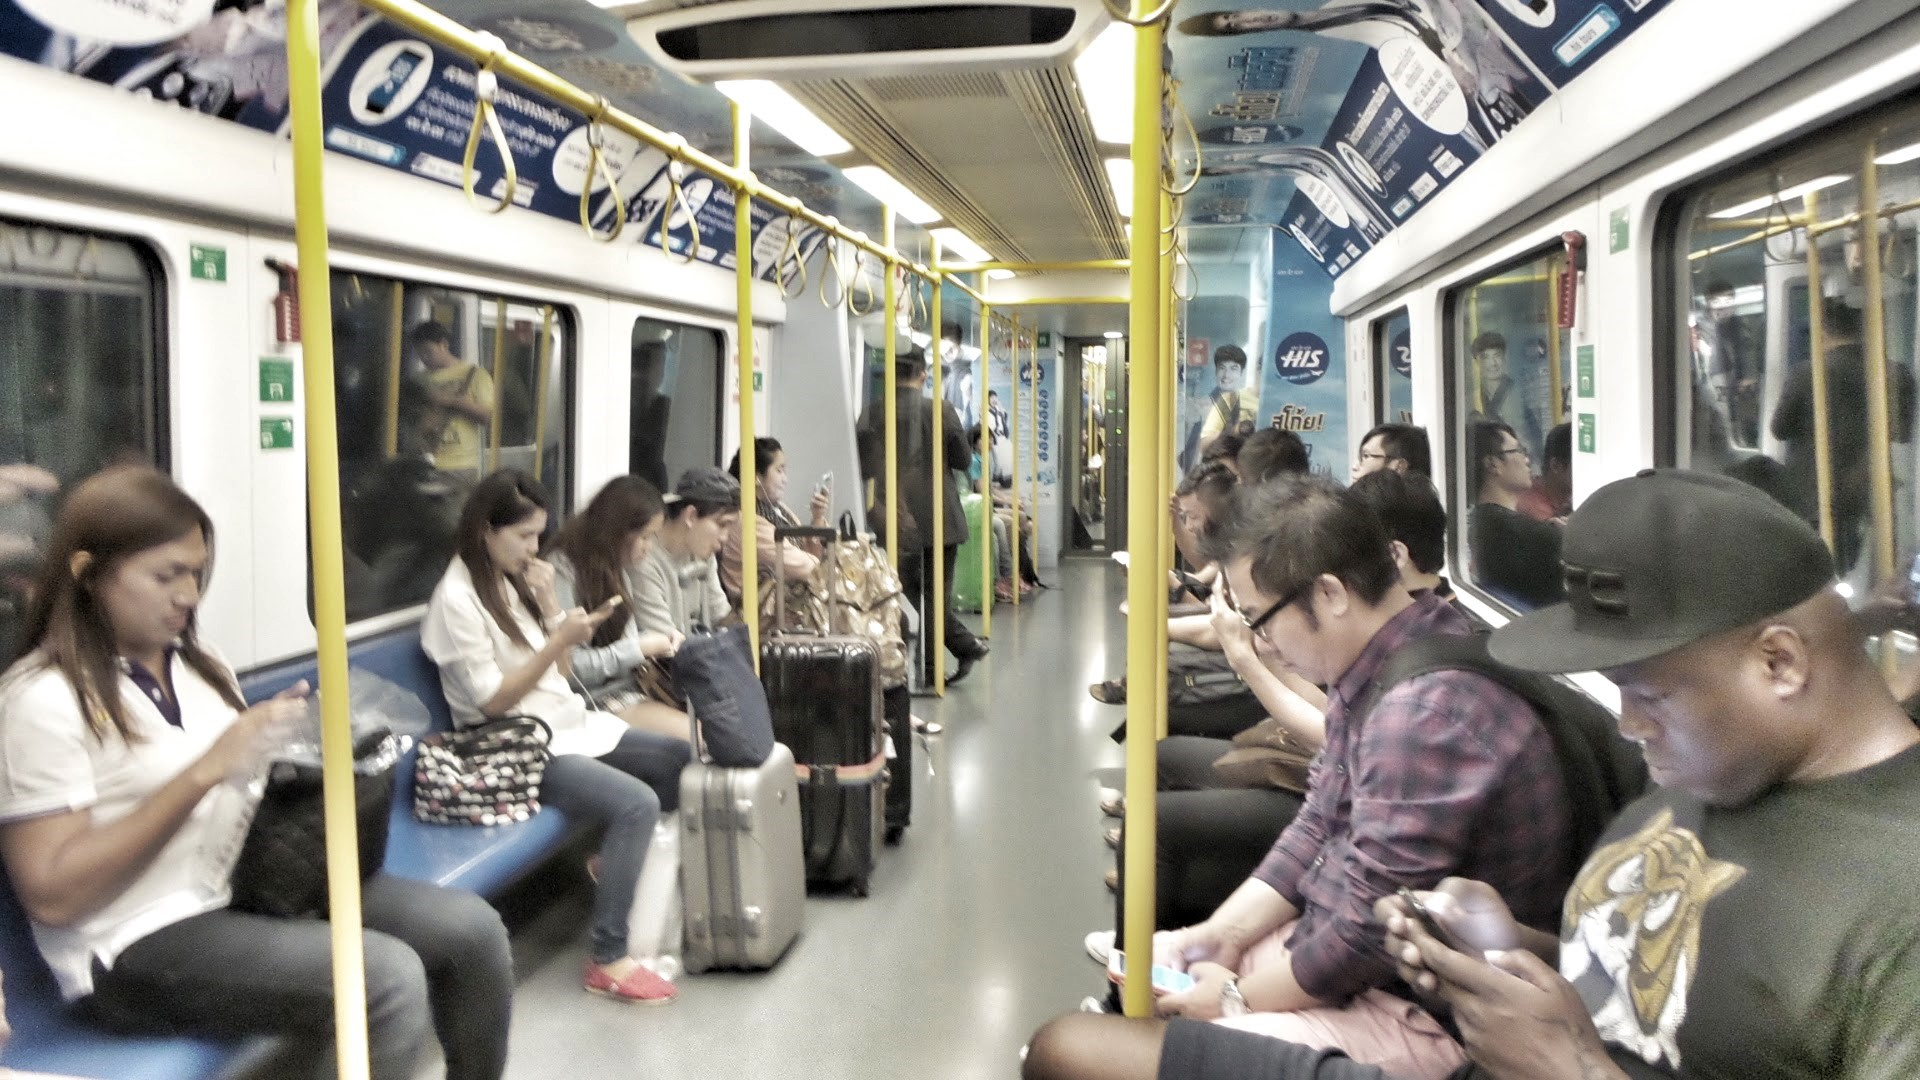 A subway car with all visible passengers looking at their smartphones